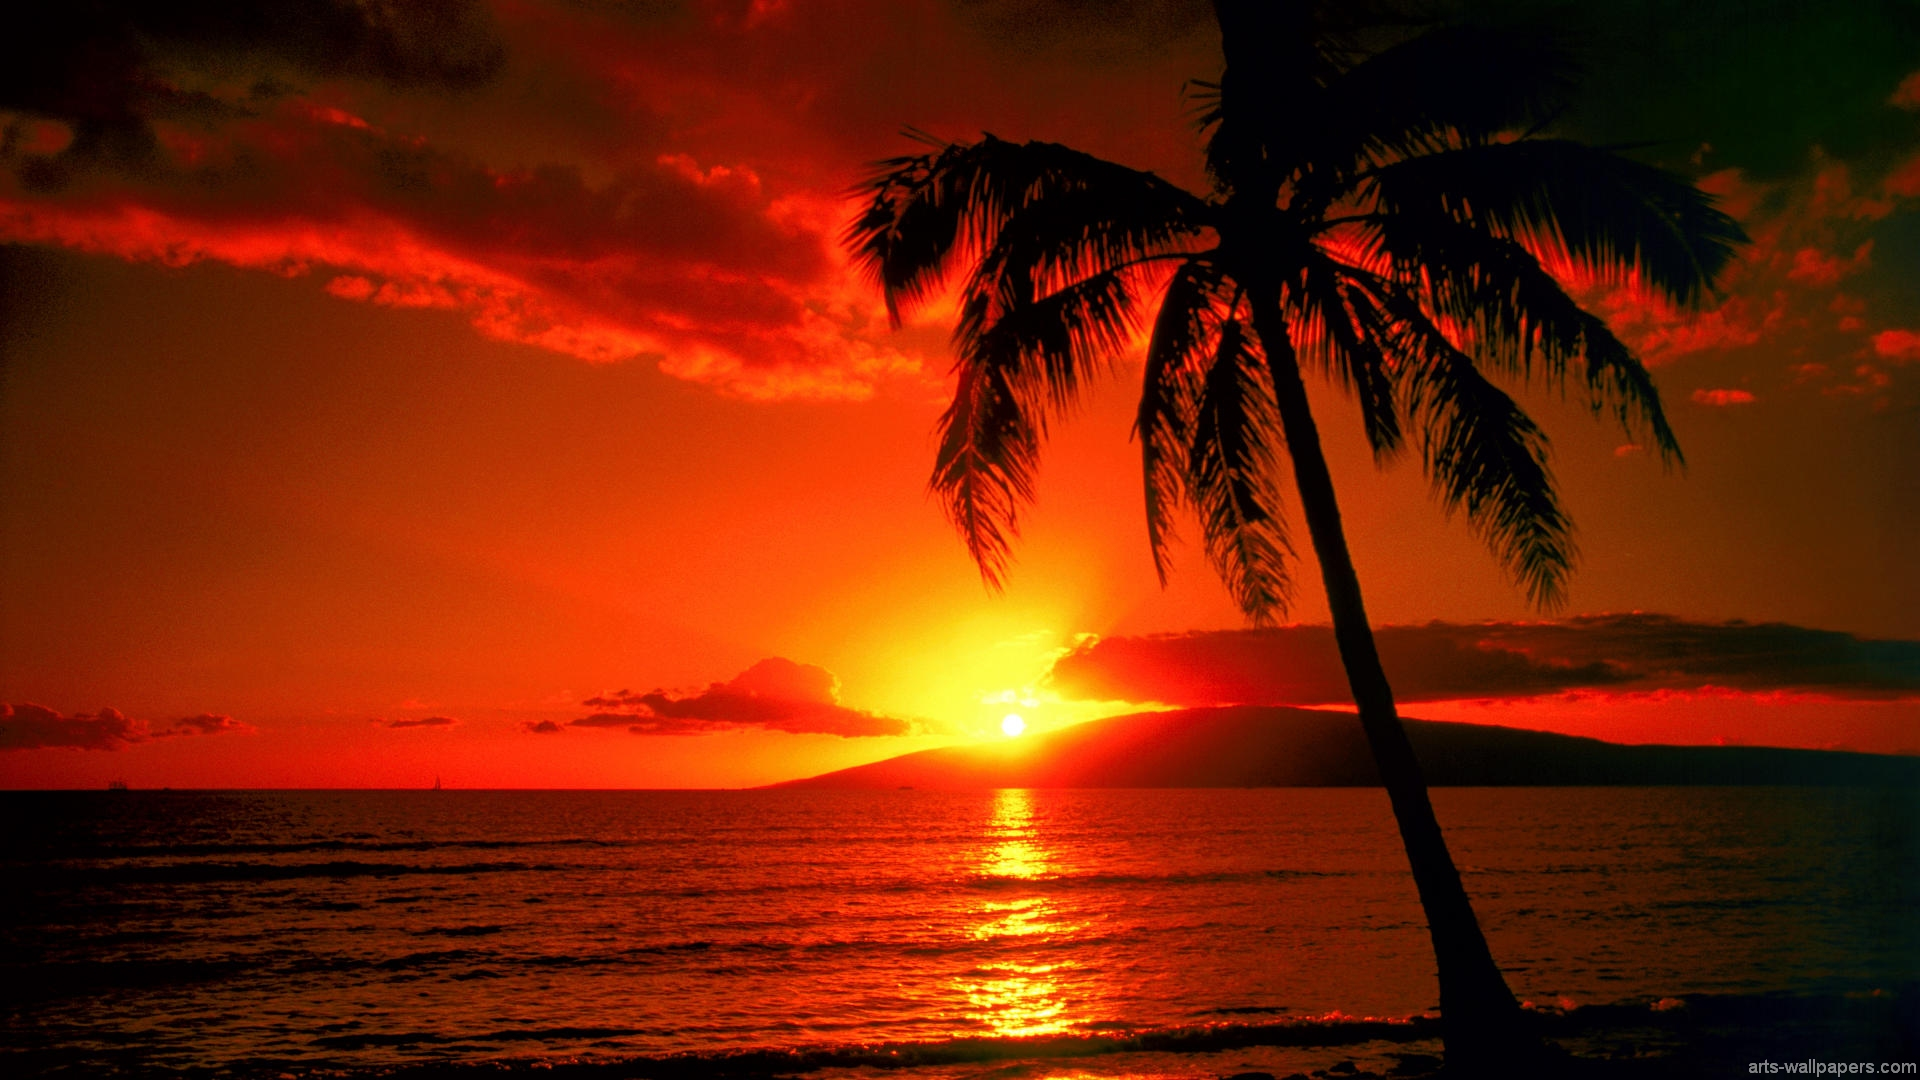 tropical island sunset hd wallpapers tropical island sunset hd 1920x1080